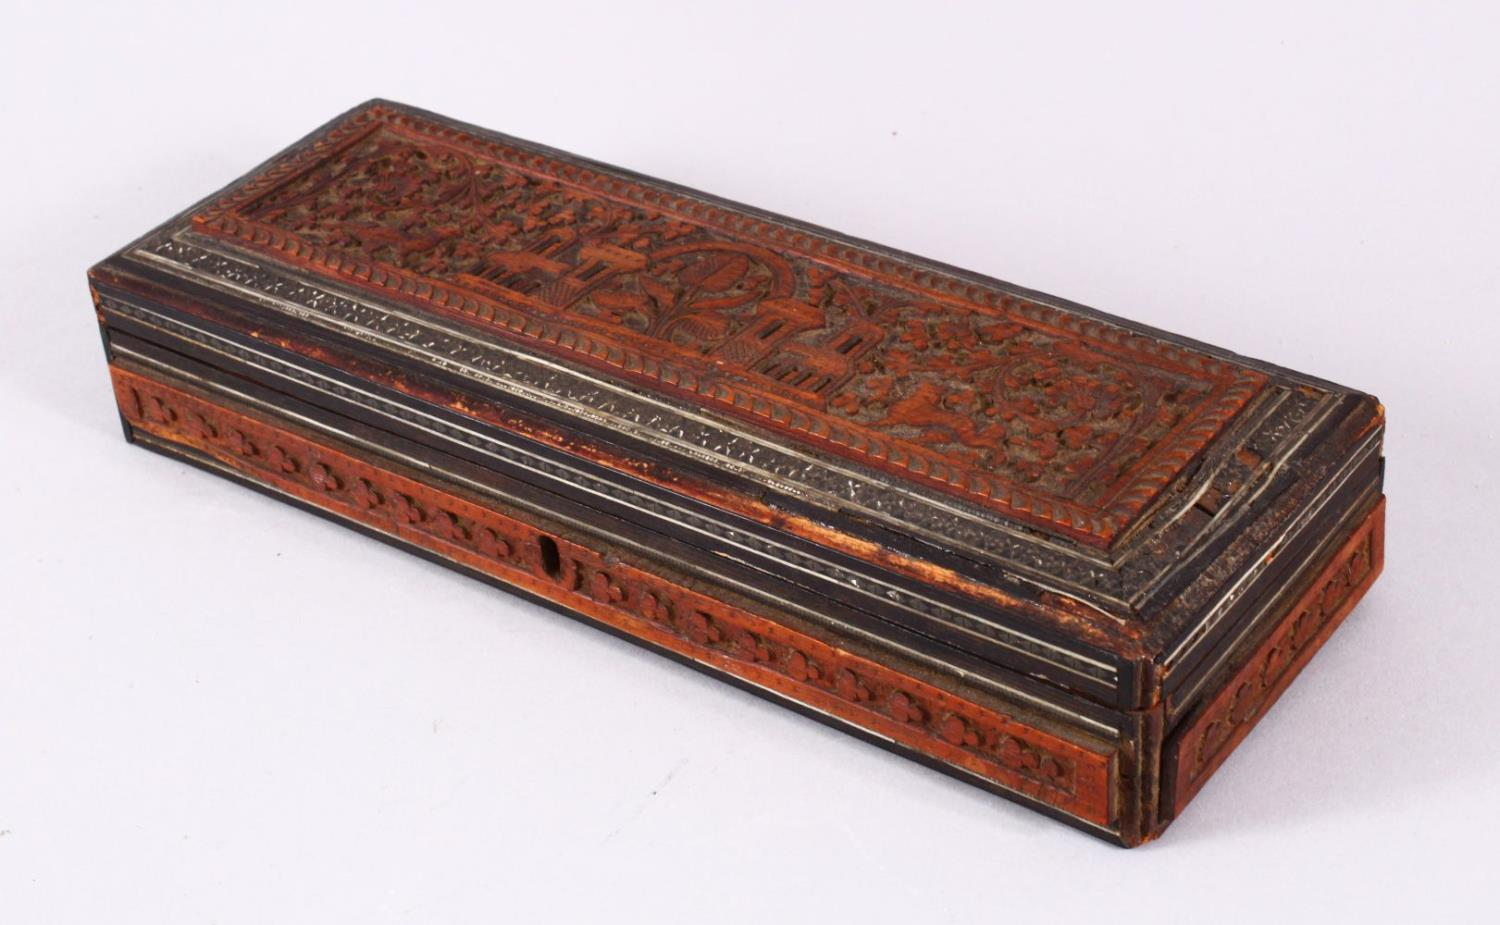 A 19TH / 20TH CENTURY INDIAN CARVED WOODEN BOX, carved with temples, animals and foliage, with